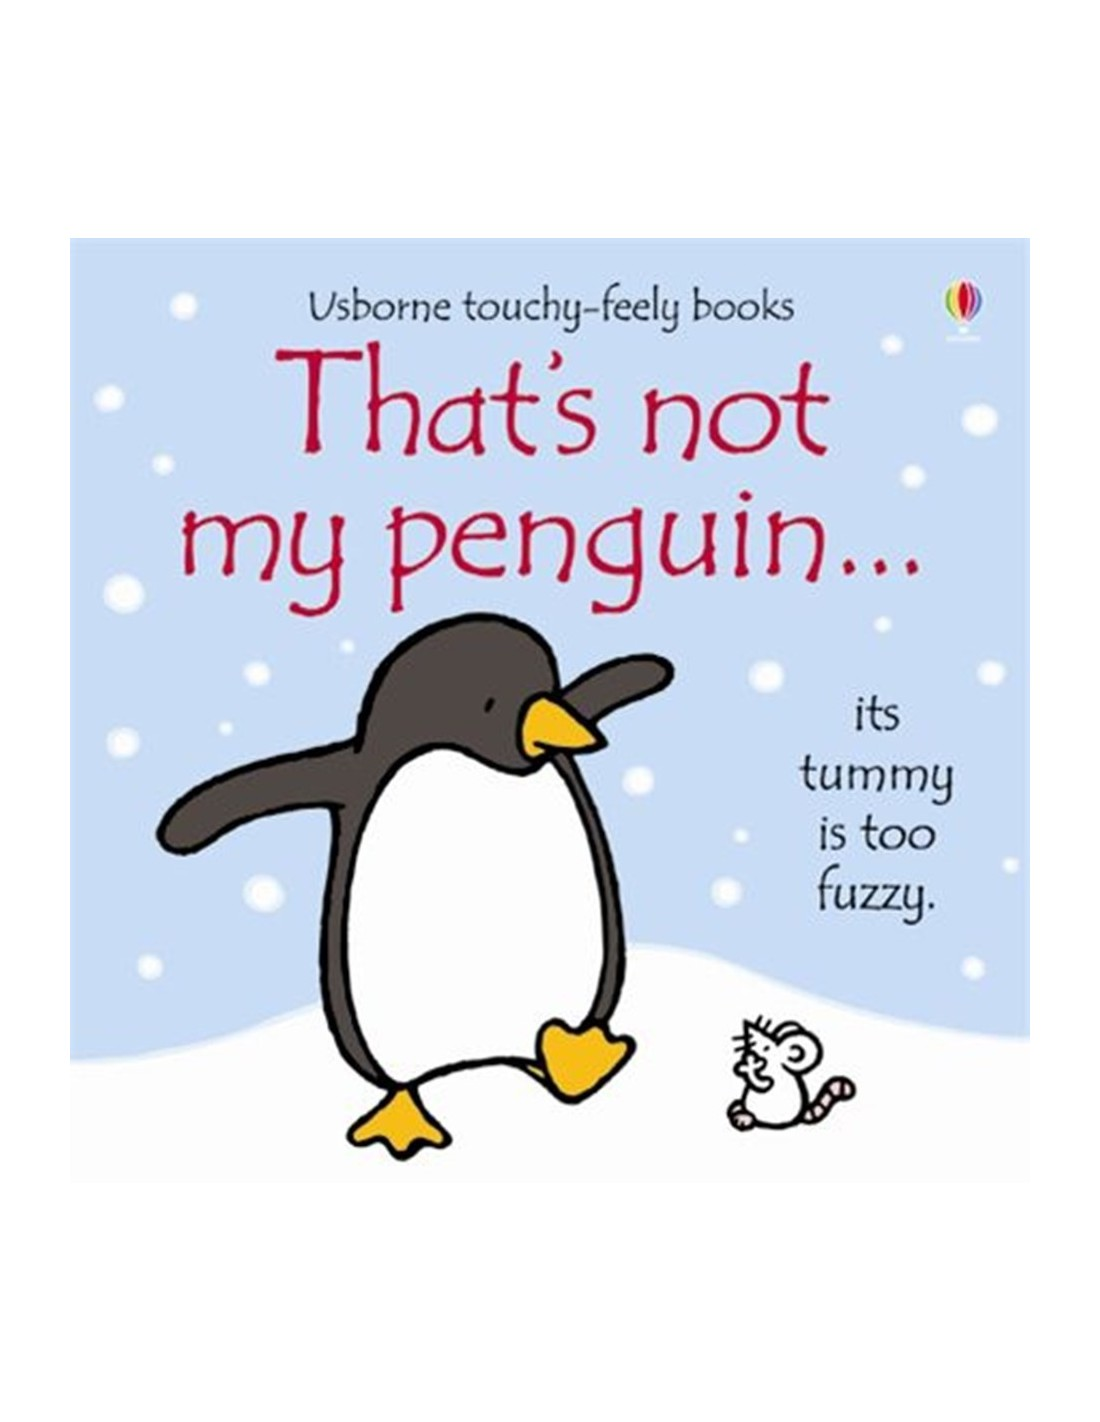 That's not my penguin...